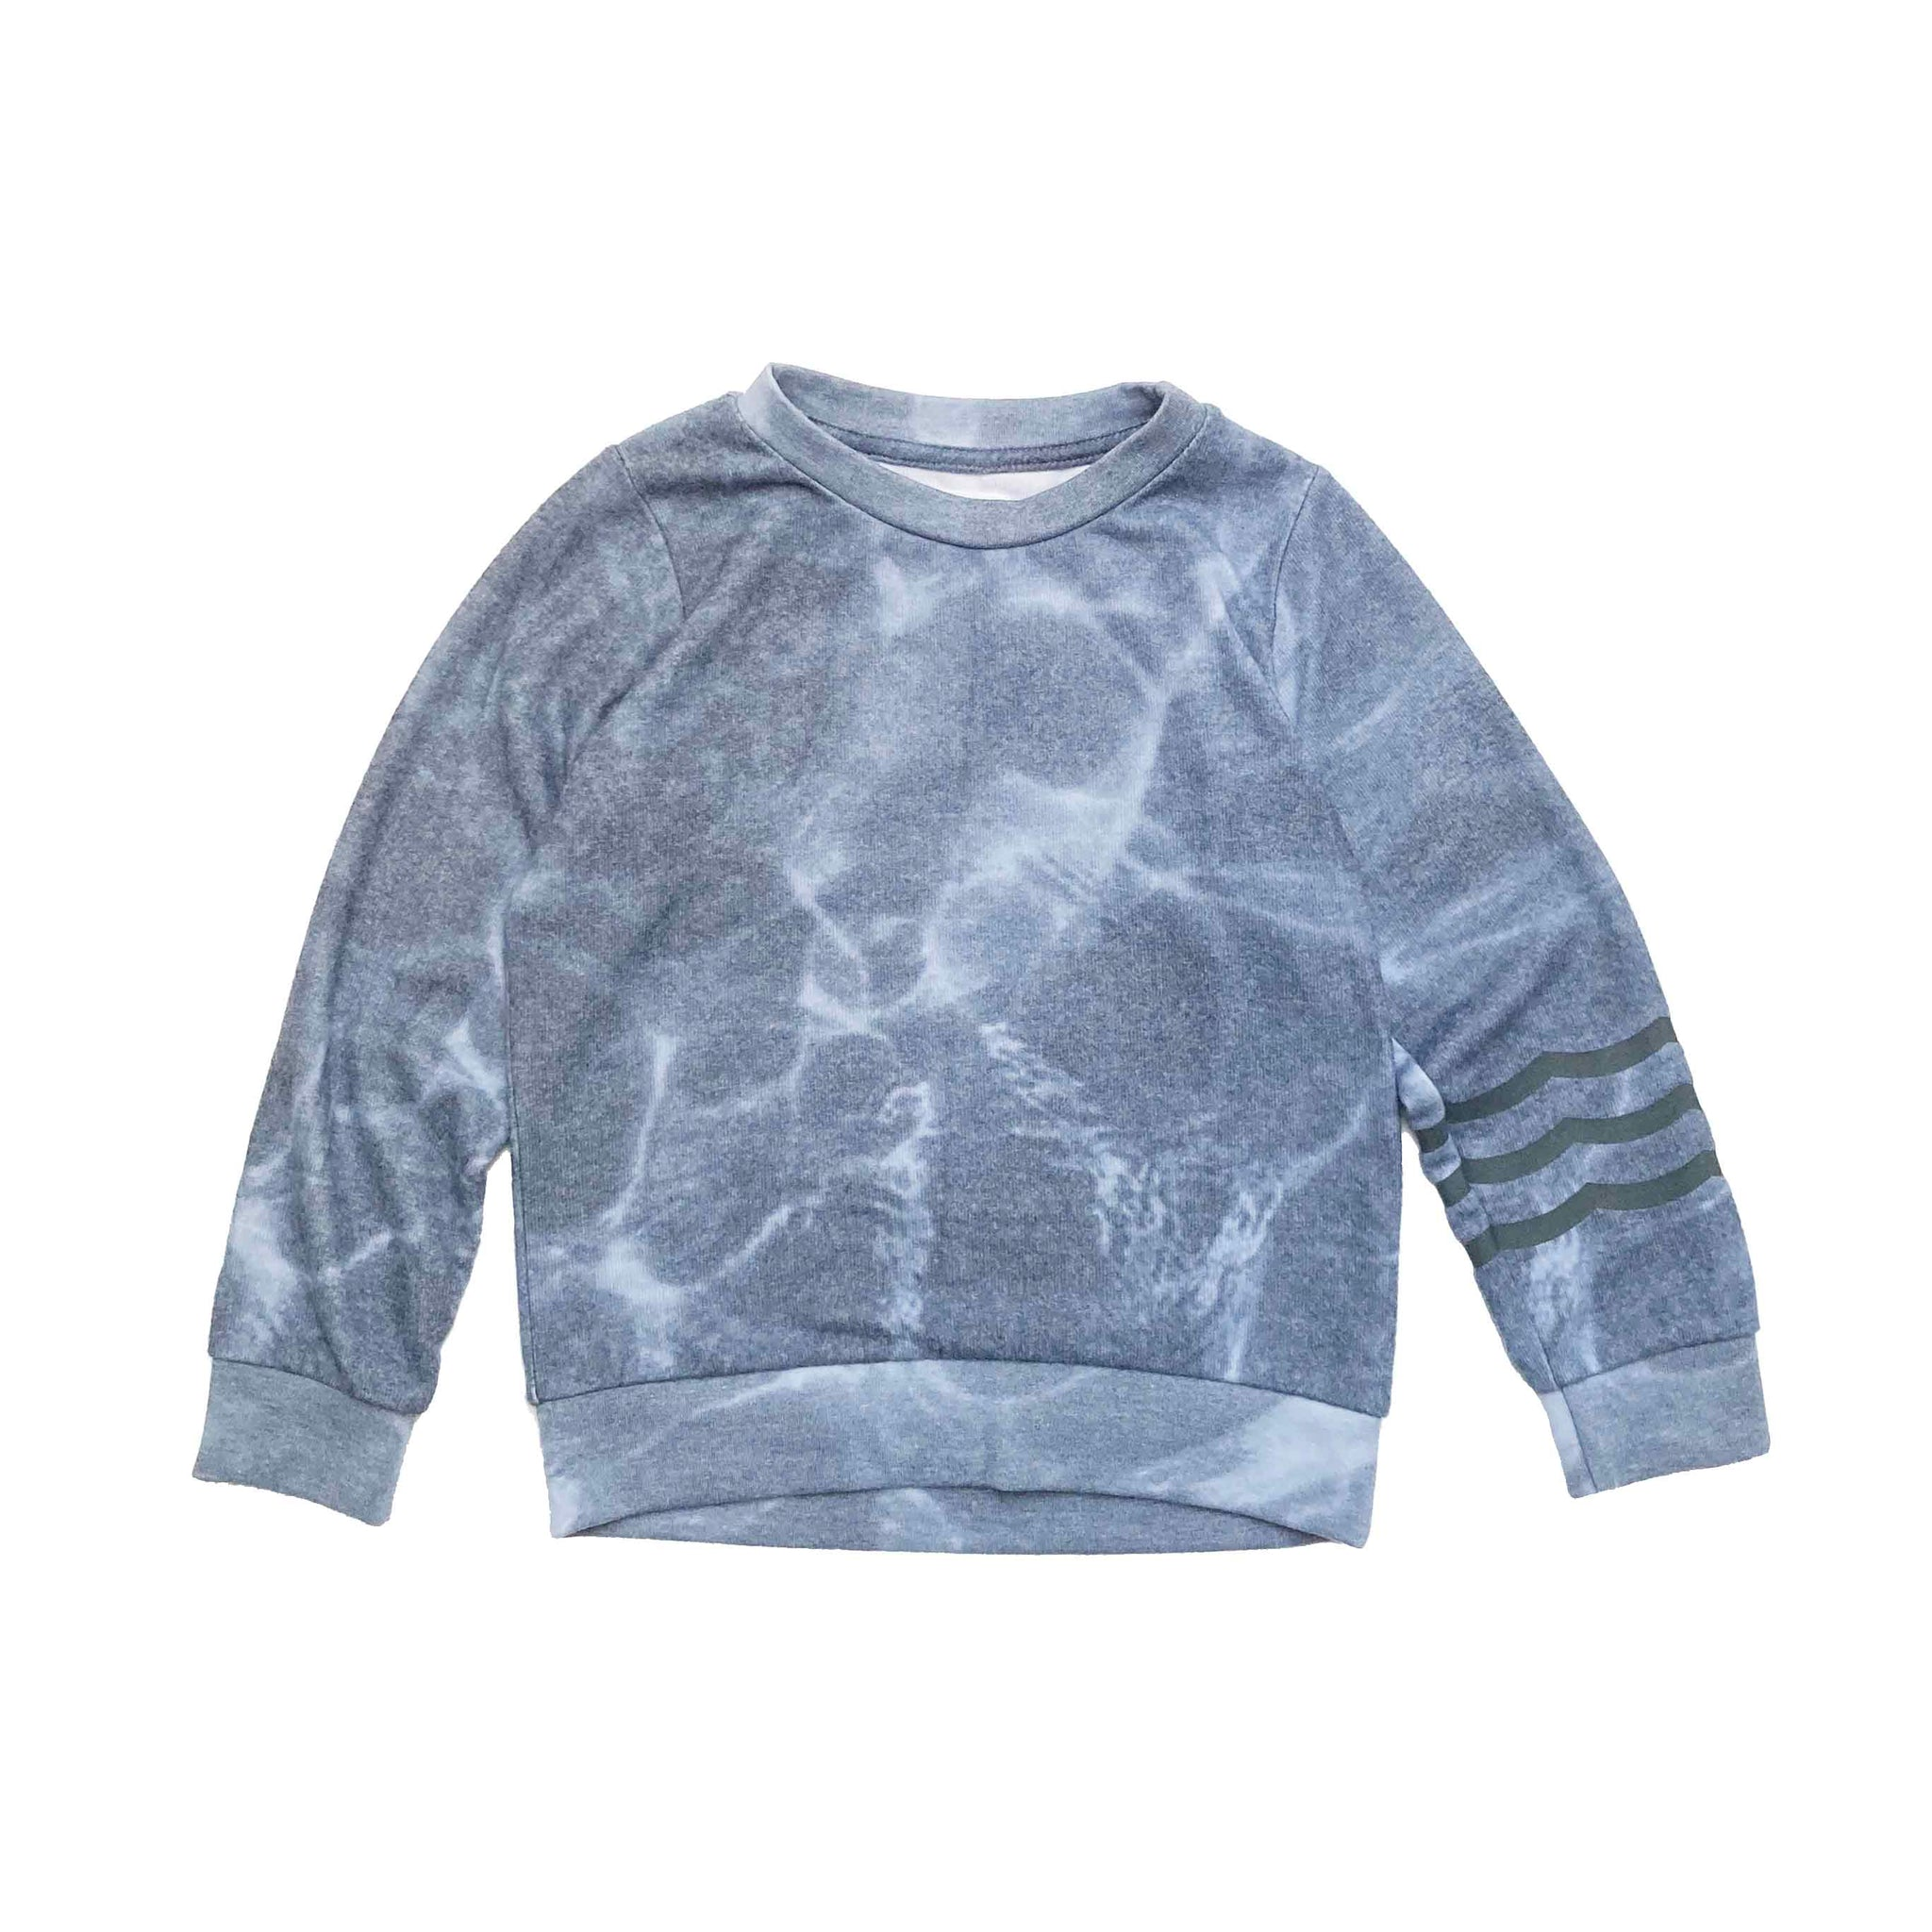 SOL ANGELES WAVES JUMPER 4 YEARS